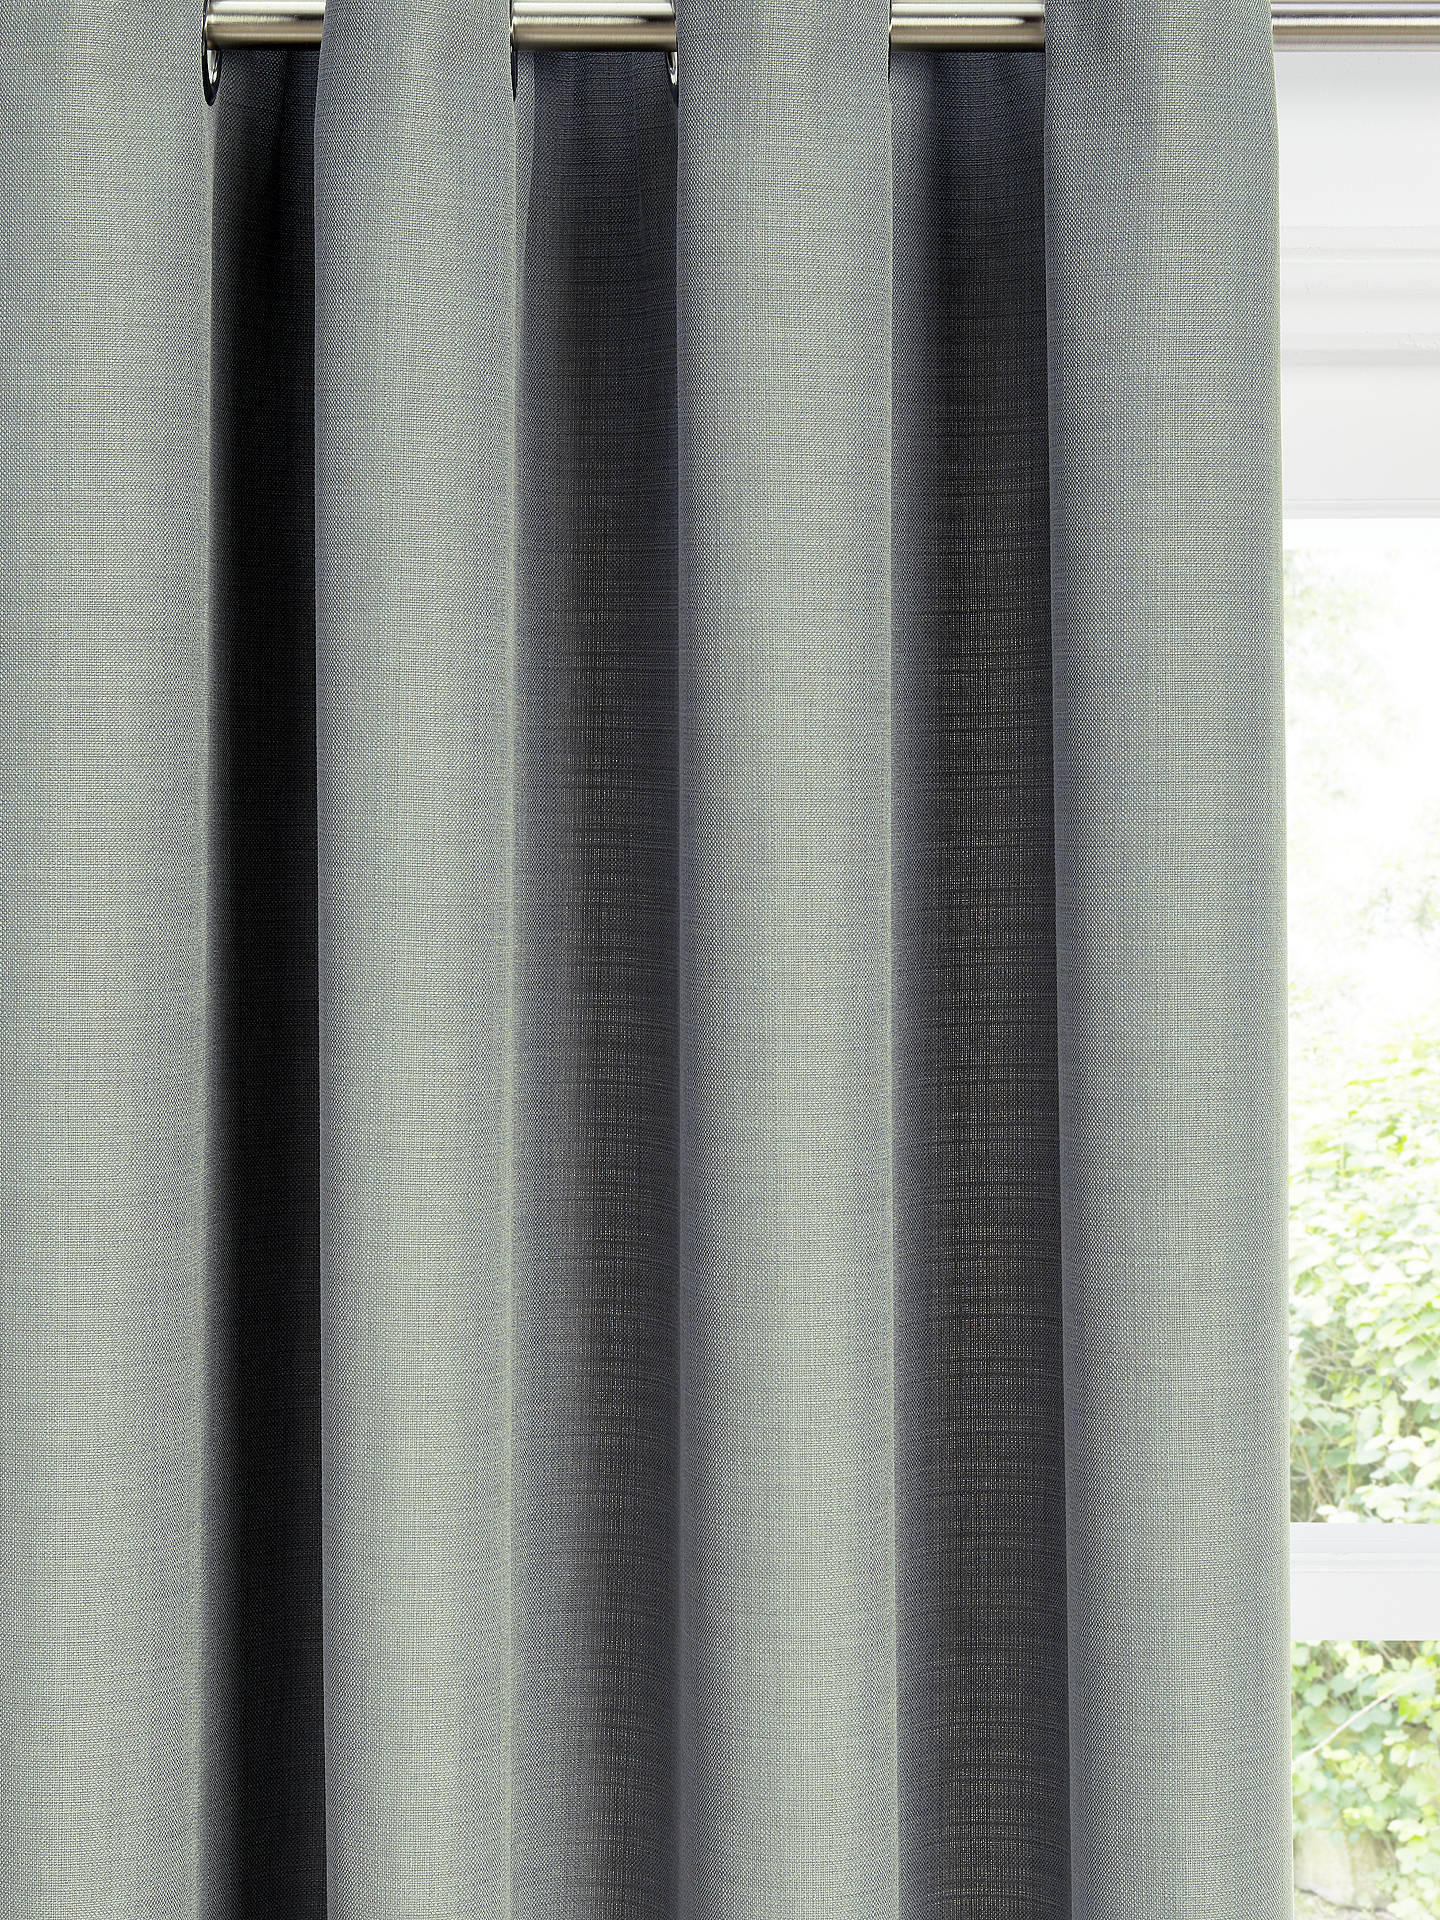 Buy John Lewis & Partners Barathea Pair Lined Eyelet Curtains, Mid Grey, W117 x Drop 137cm Online at johnlewis.com